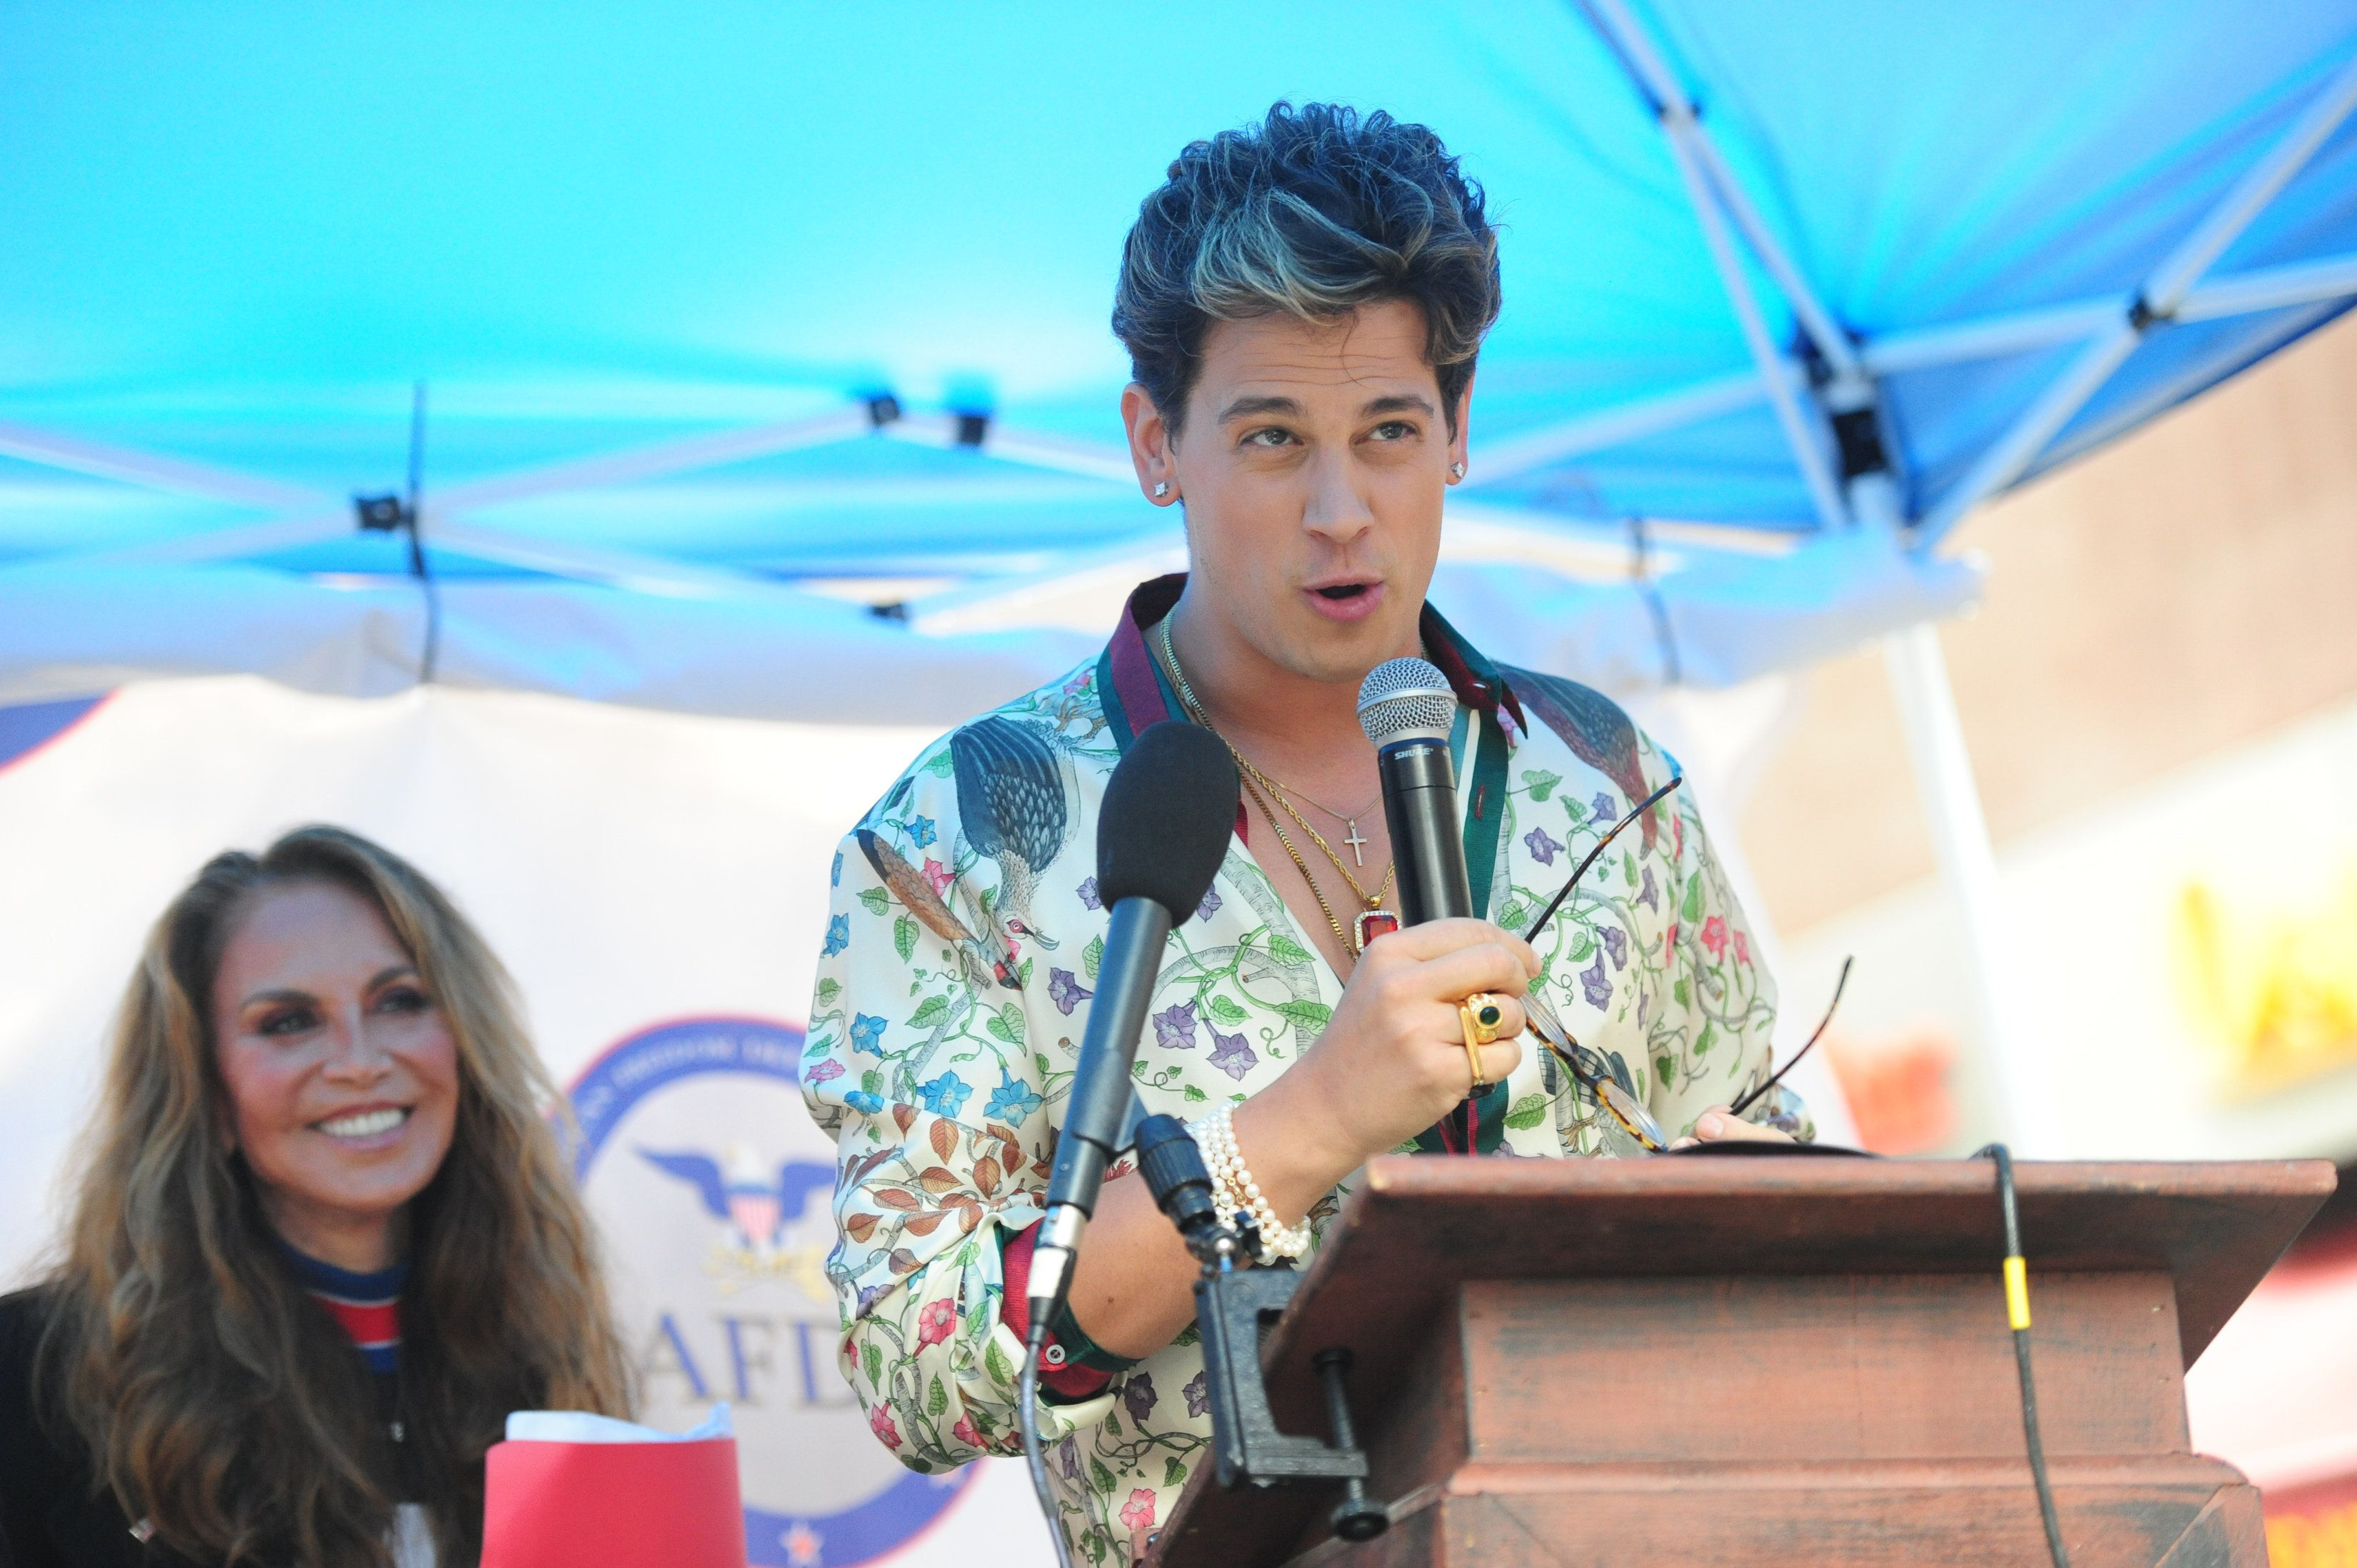 Milo Yiannopoulos speaks at rally with LEFT Pamela Geller - Alt-right supporters hold rally in front of CUNY on East 42nd St. and 3rd ave to protest against CUNY's choice of Muslim-American activist Linda Sarsour as commencement speaker on Thursday May 25, 2017 - (Photo by Susan Watts/NY Daily News via Getty Images)